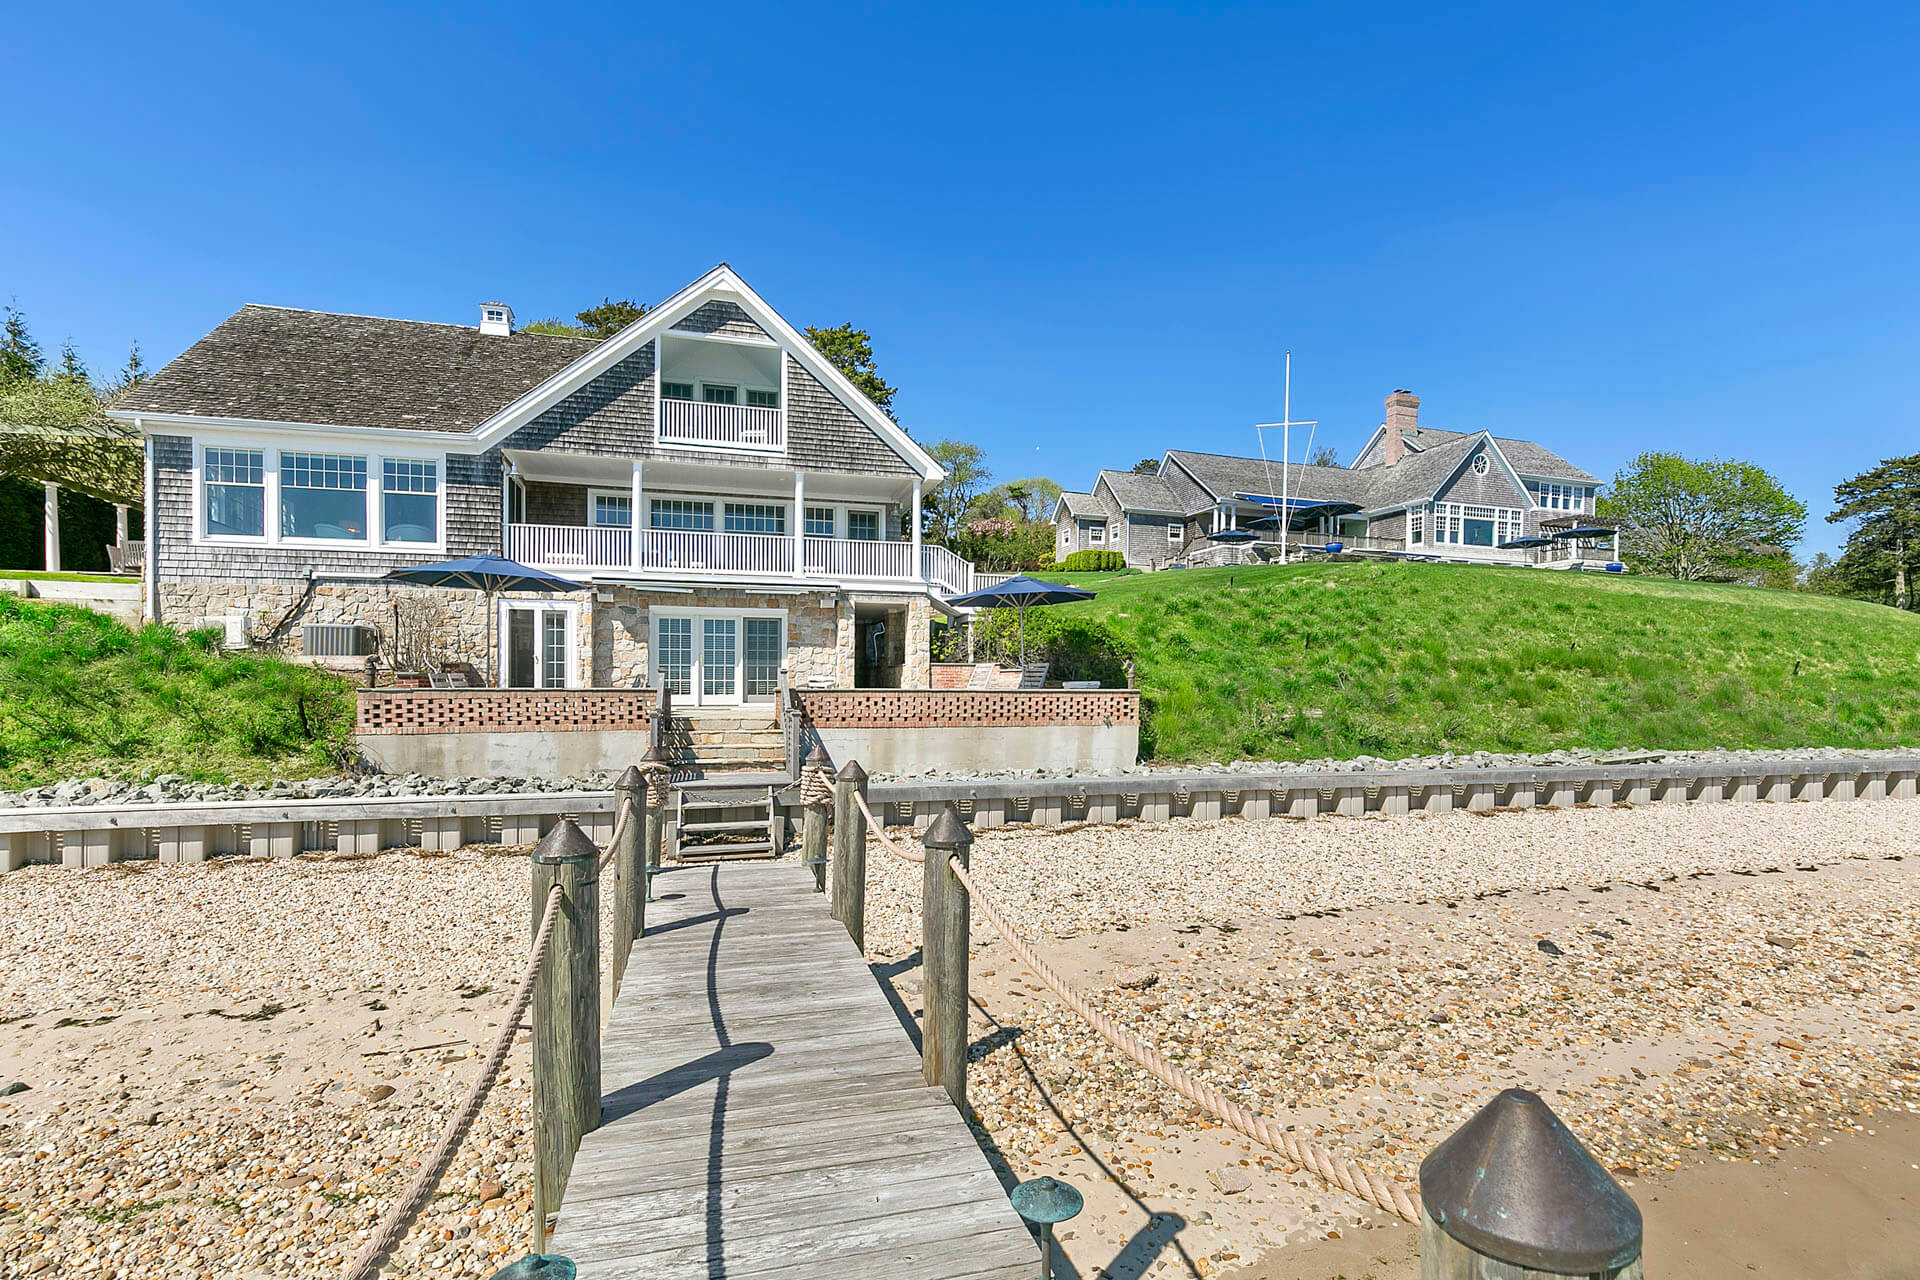 Guest house with a dock and beach in The Hamptons